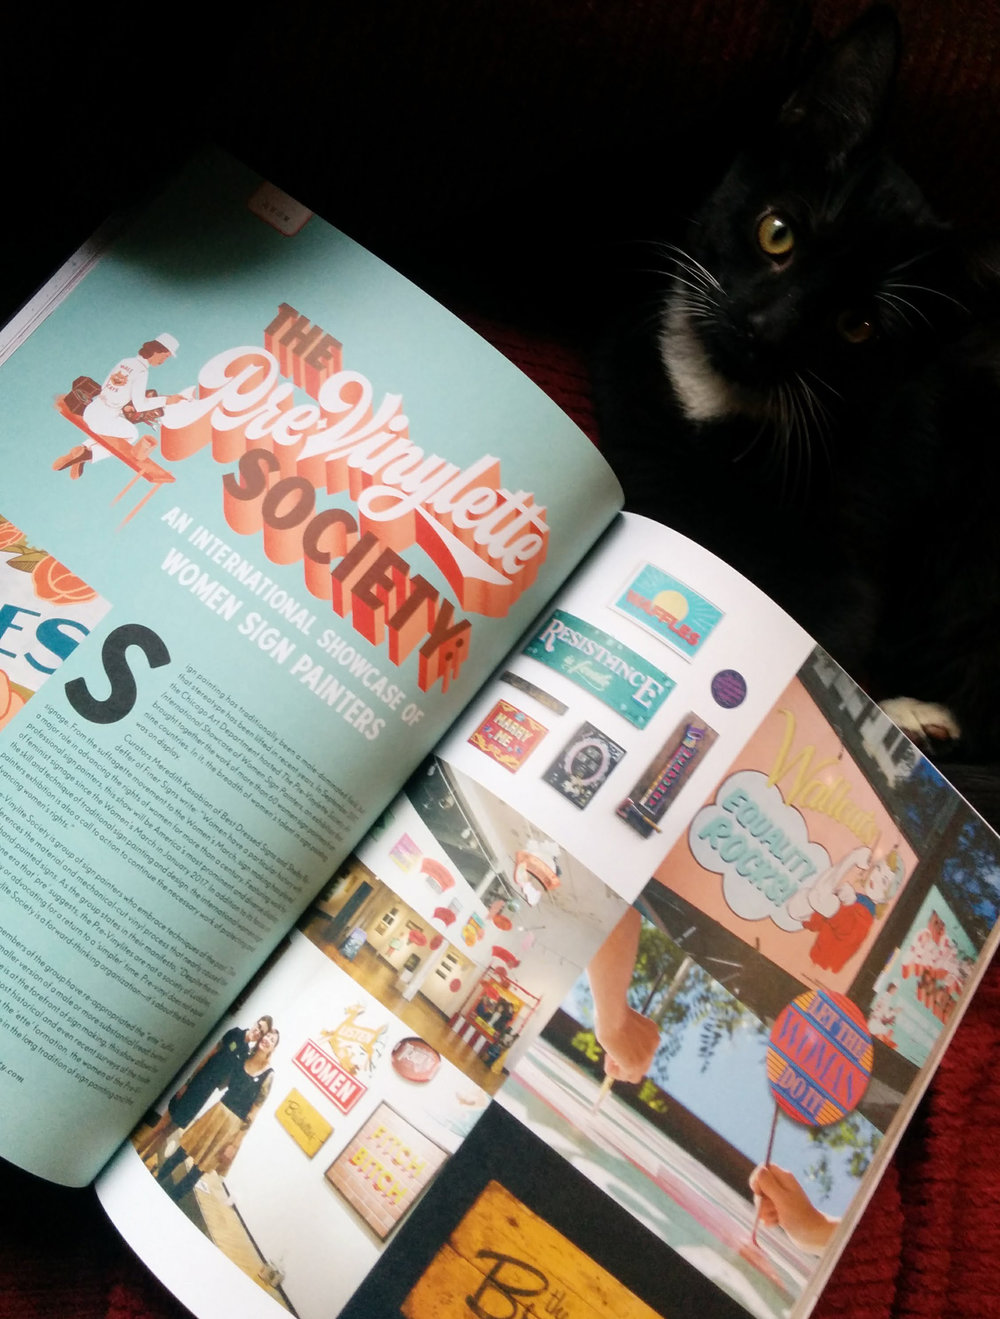 The Pre-Vinylette Society in Uppercase Magazine (Issue 36)